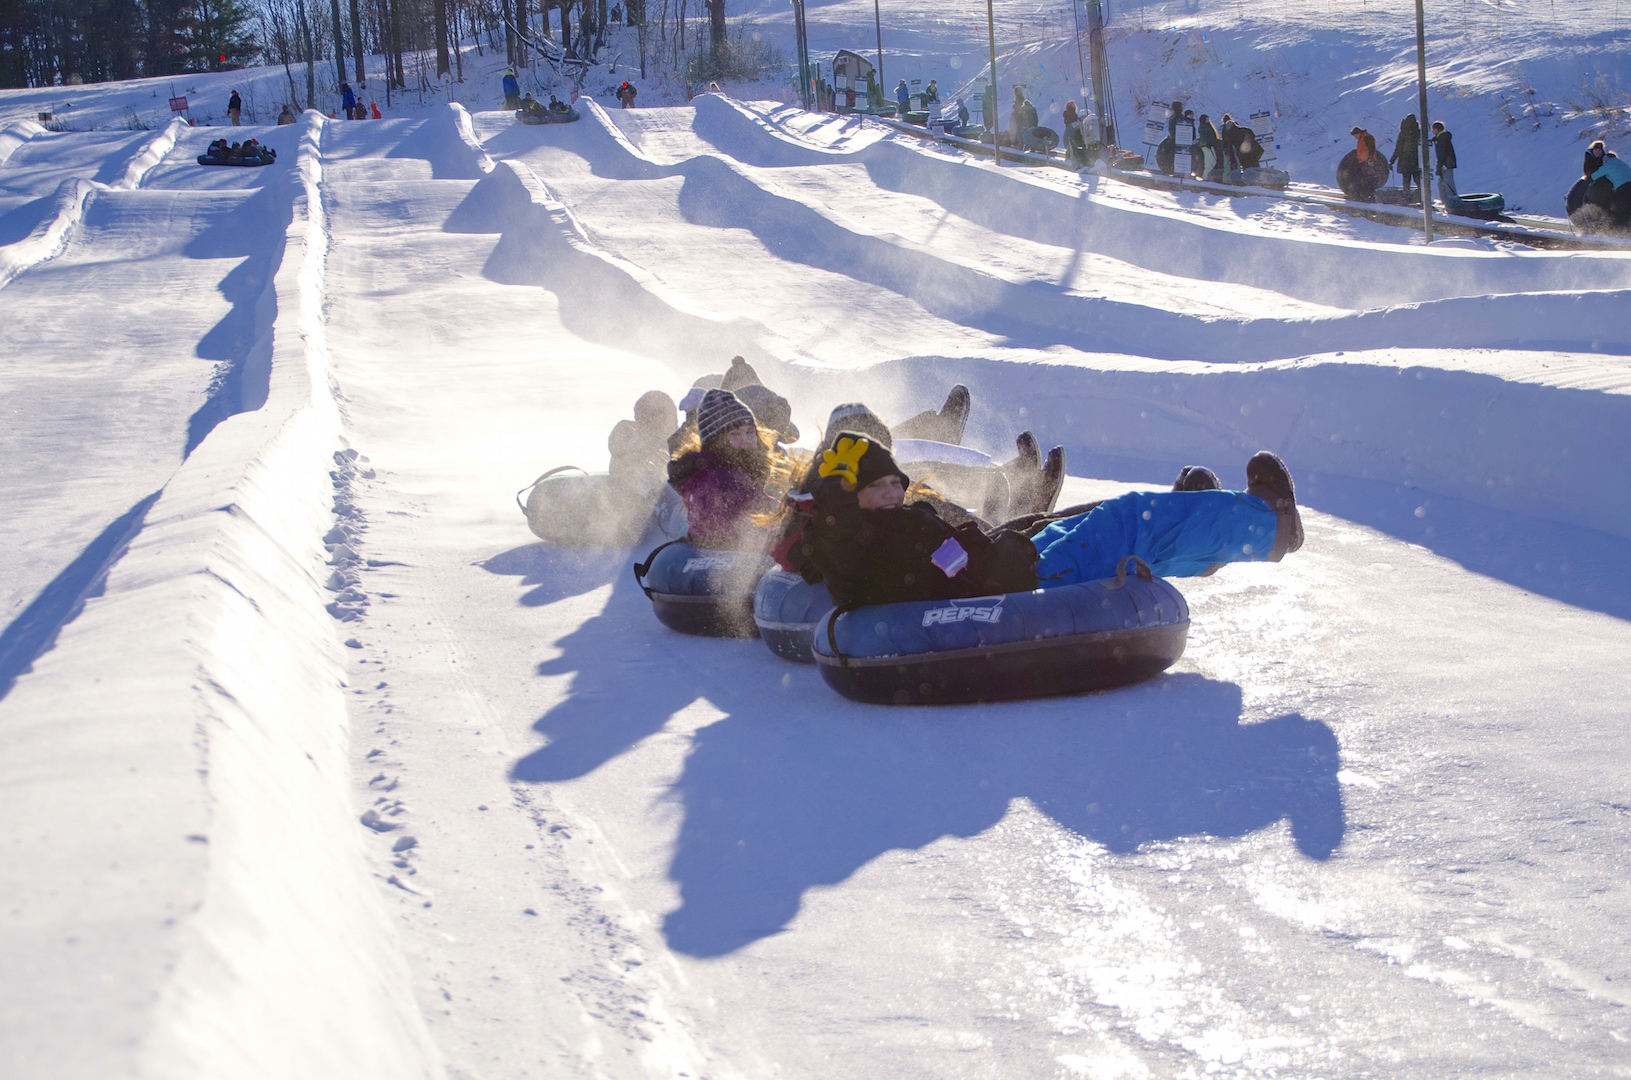 Snow Tubing at Snow Trails in Mansfield, Ohio